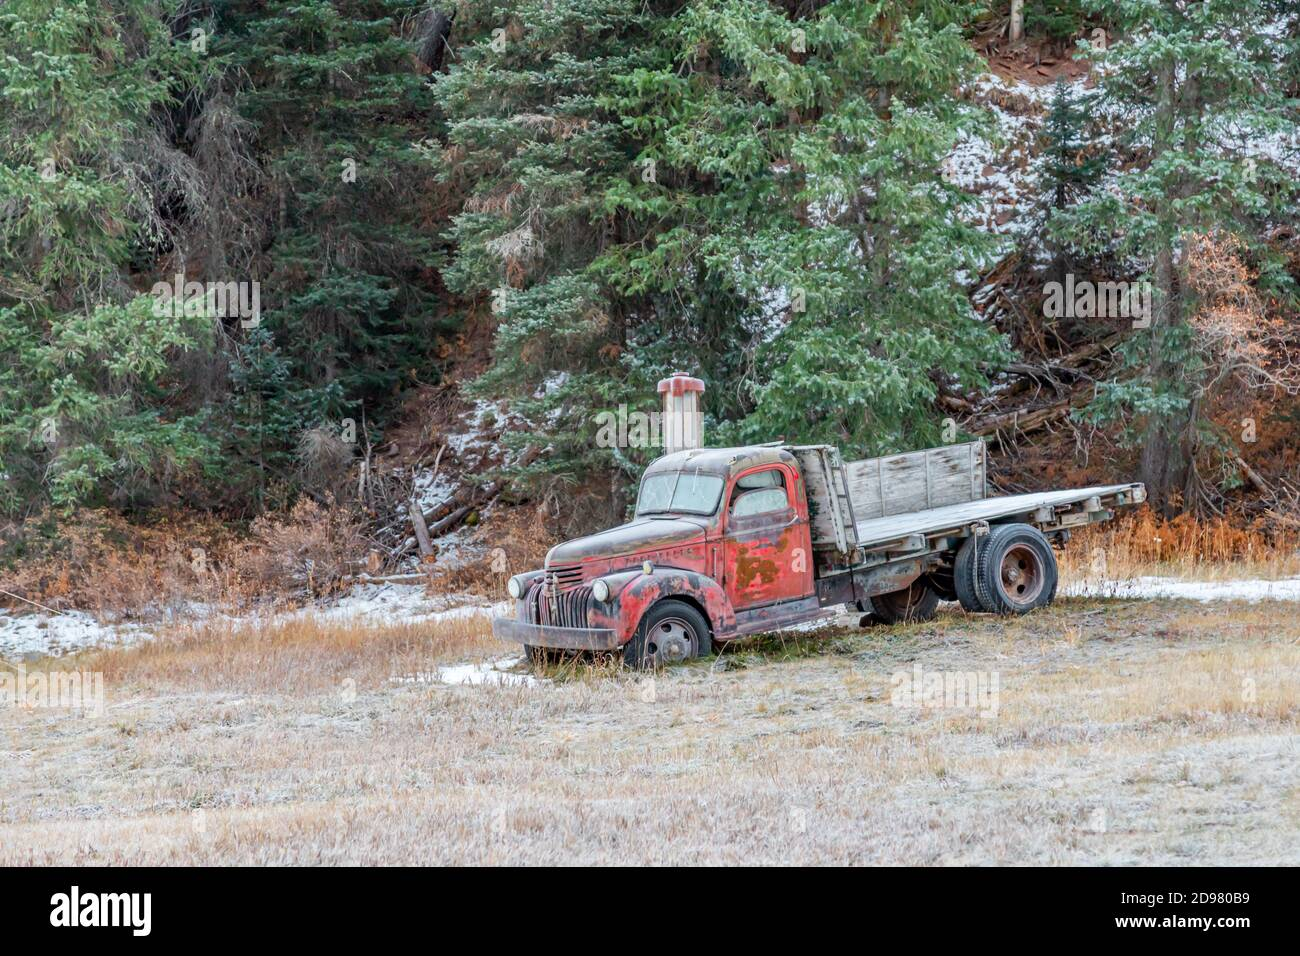 Flat Bed Truck High Resolution Stock Photography And Images Alamy